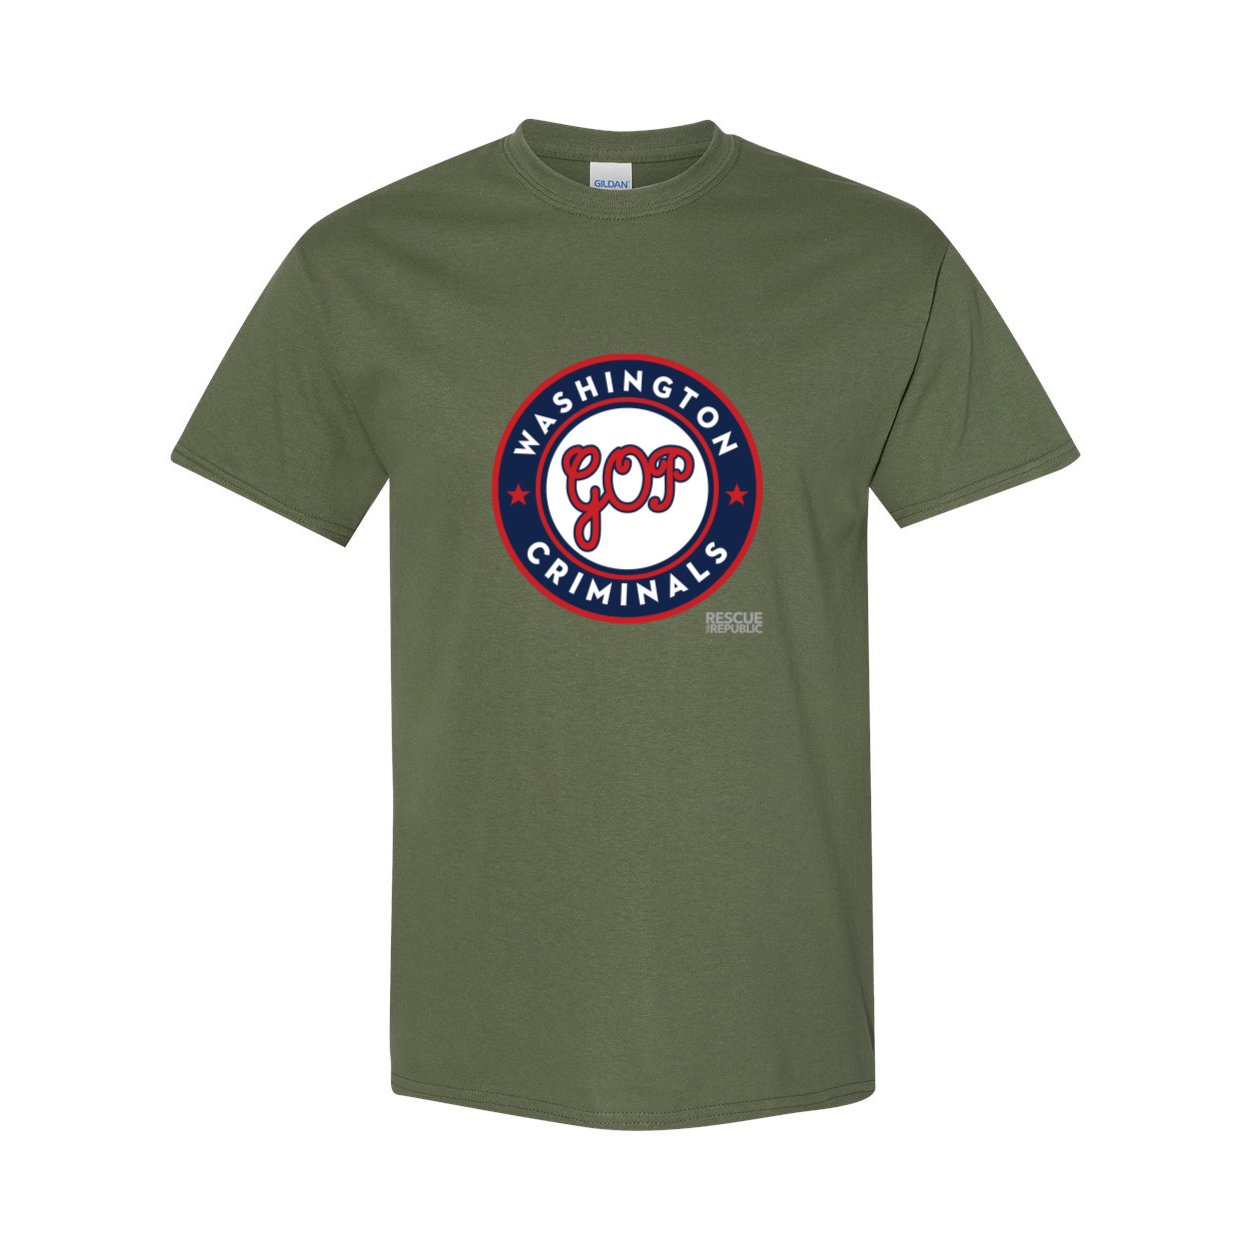 Washington GOP Criminals T-Shirt